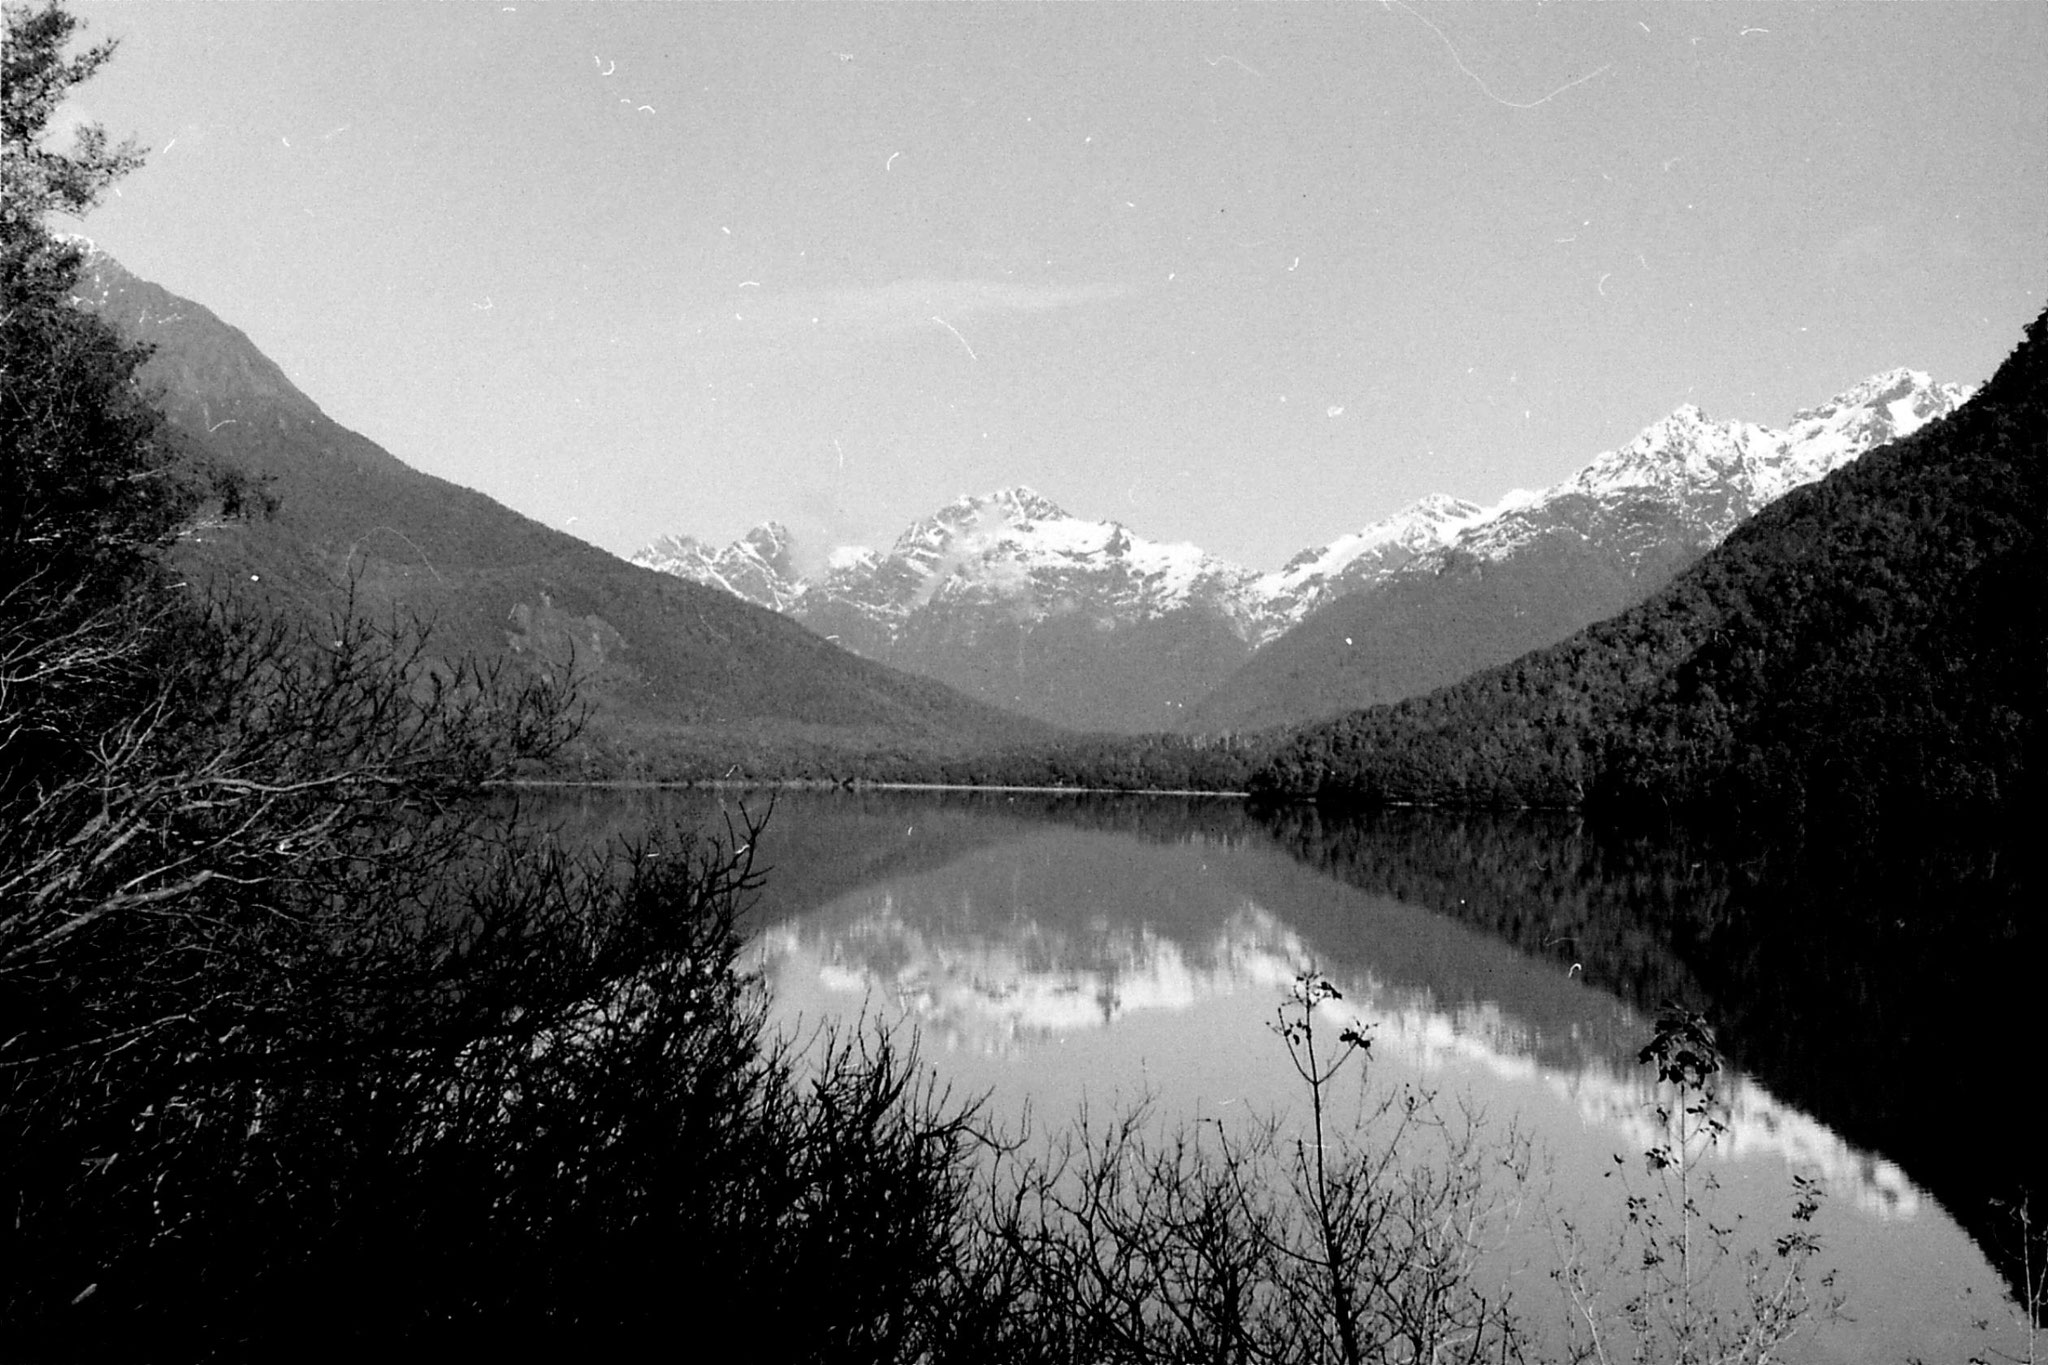 15/8/1990: 14: Lake Gunn from road